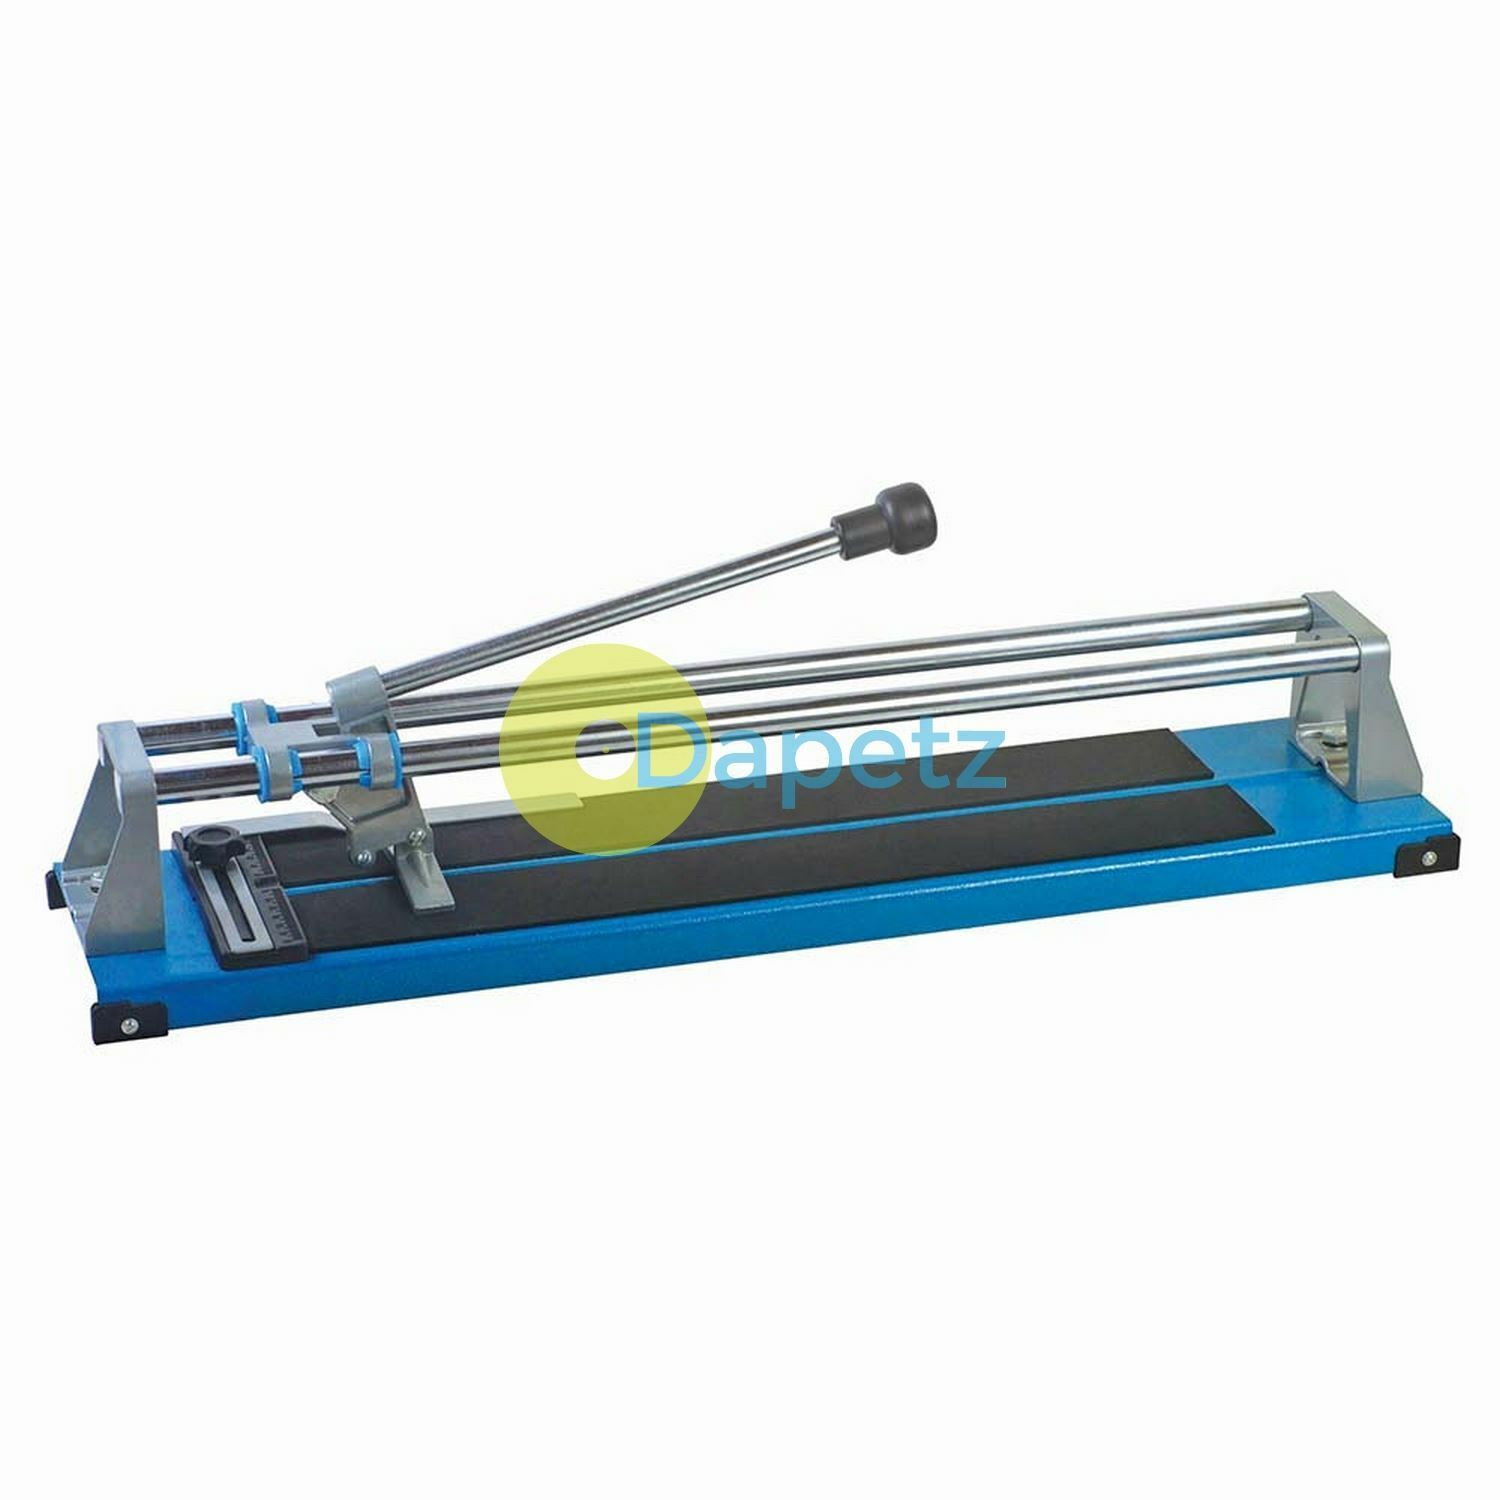 Tile Carbide Cutter 600mm Tungsten Carbide Tile 5 - 12mm Cutting Depth For Tiles Steel Blade 49a793